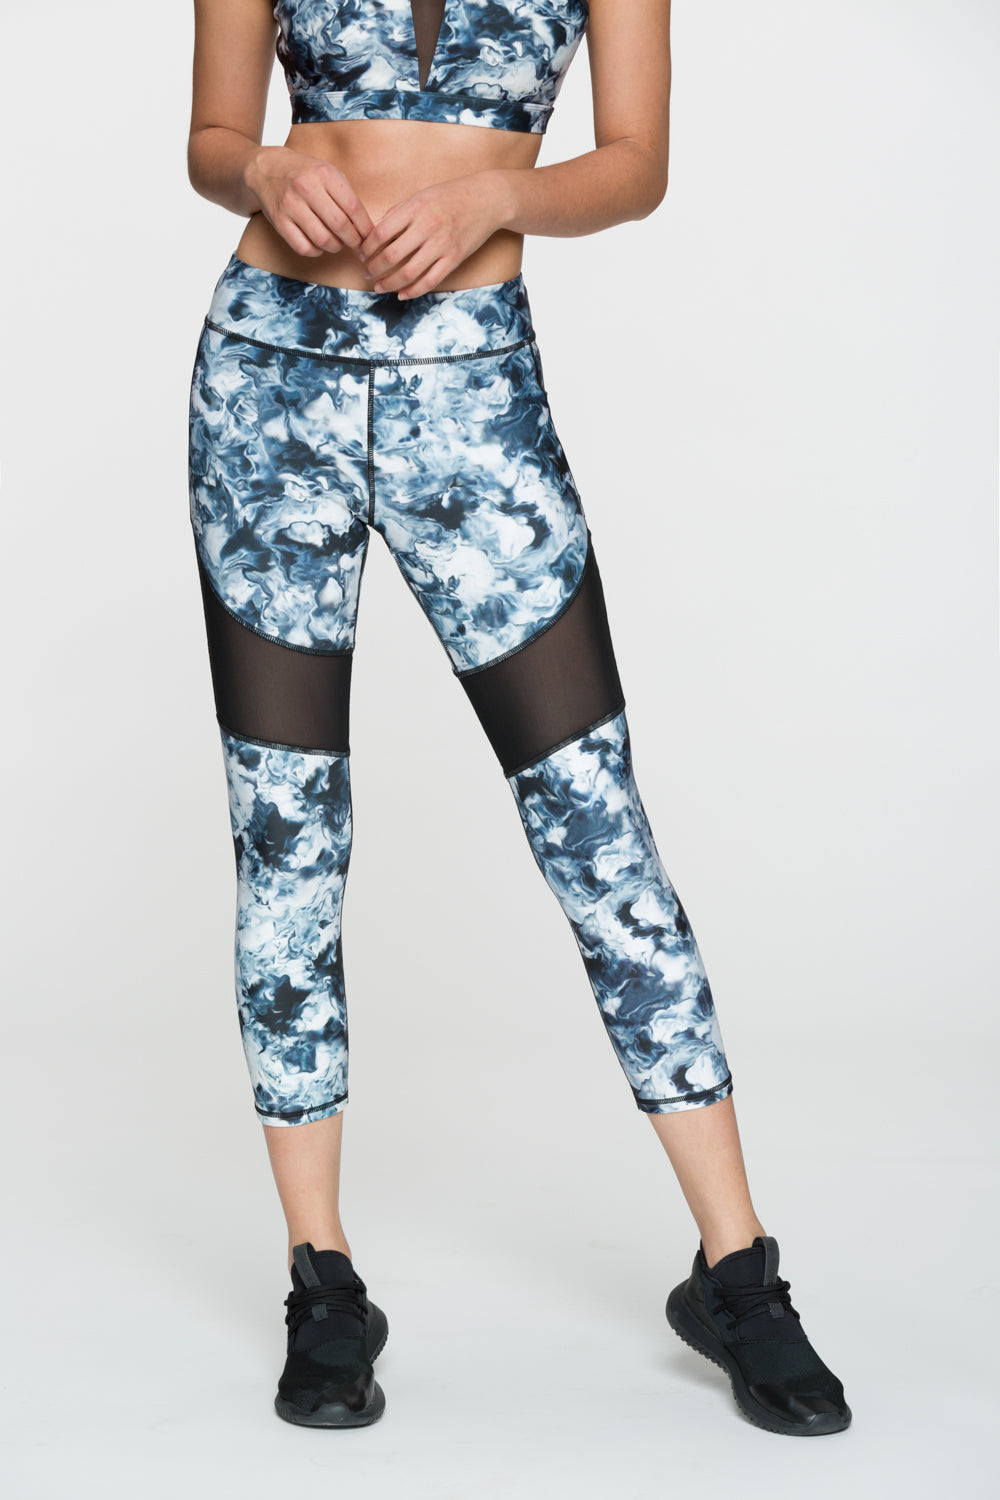 Riptide Cropped Legging